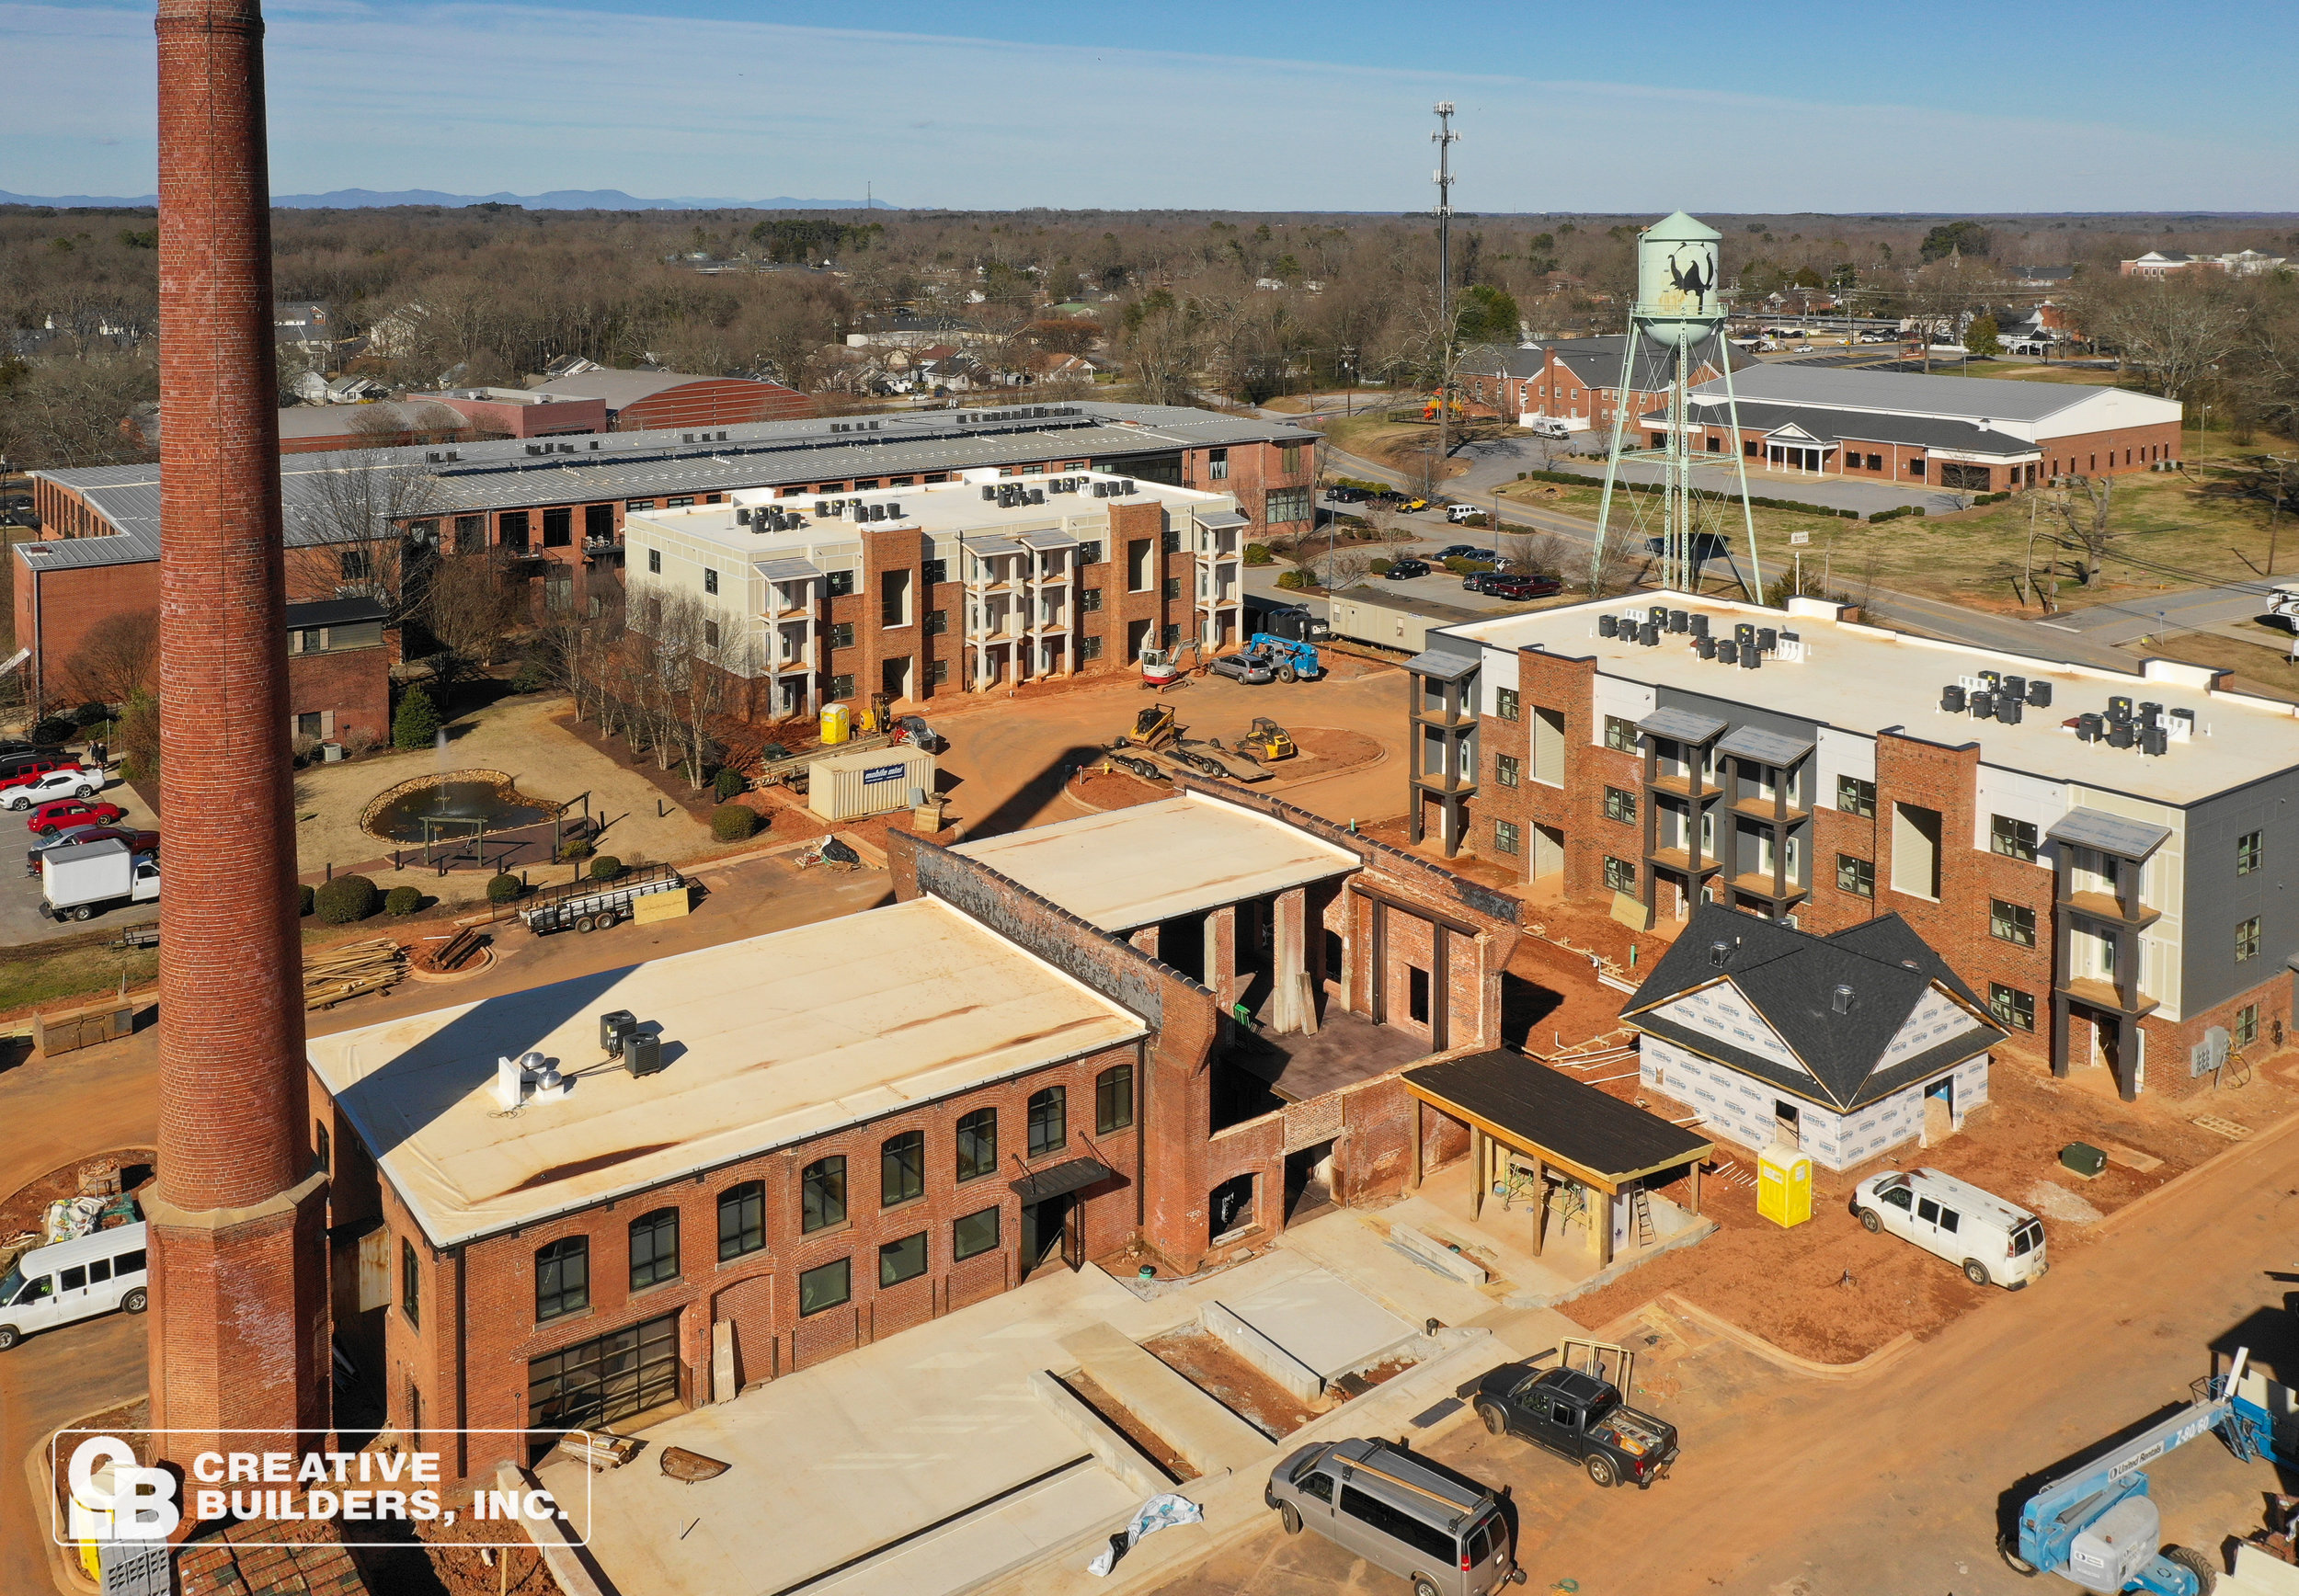 cotton_mill_commons_2019-01-31-11.jpg